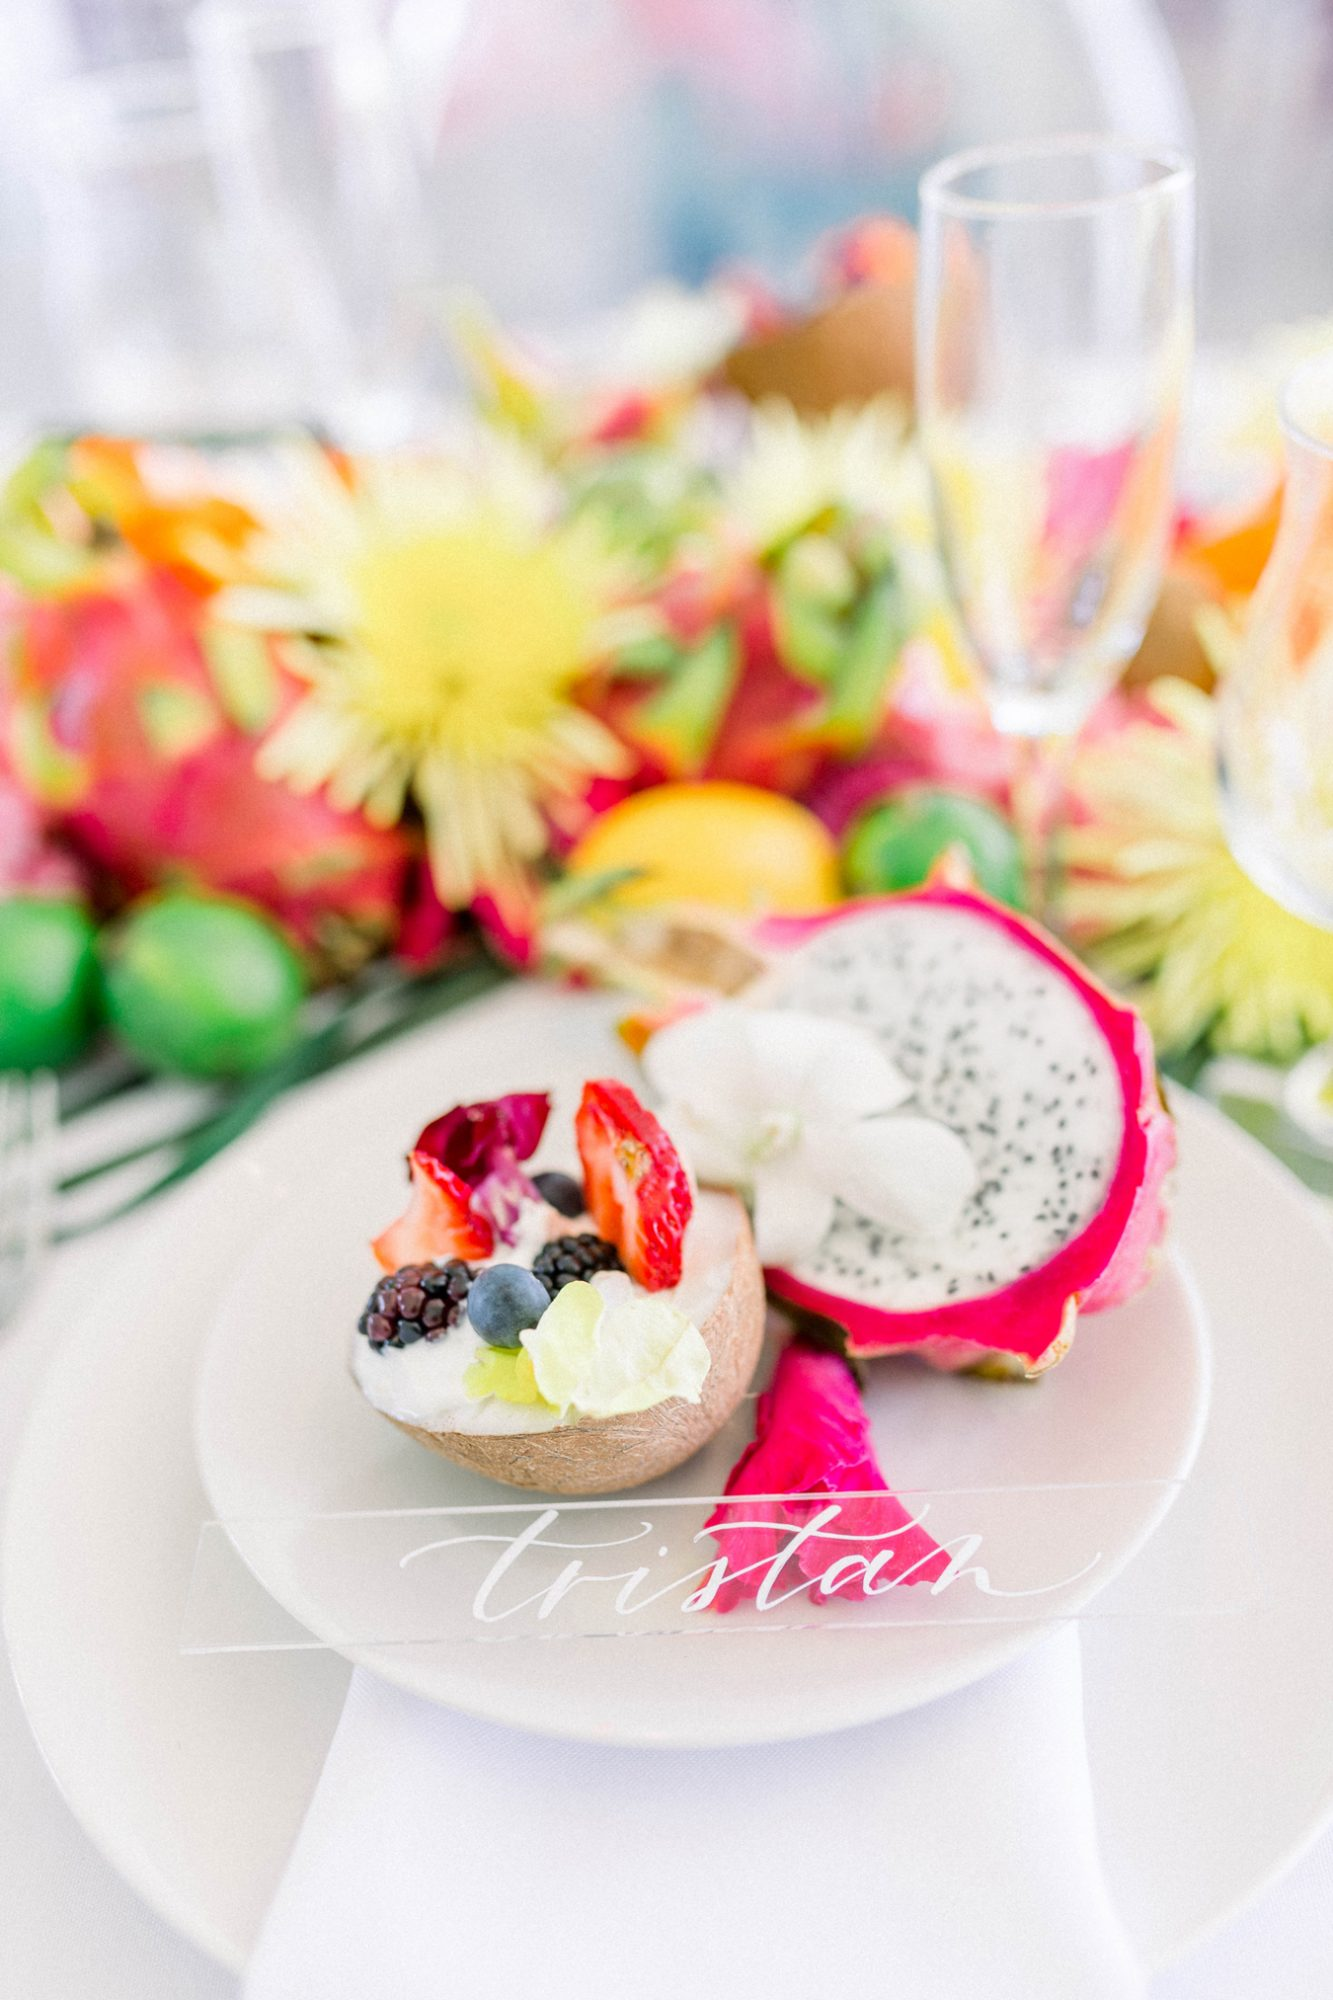 coconut featured dinner dish with fruit